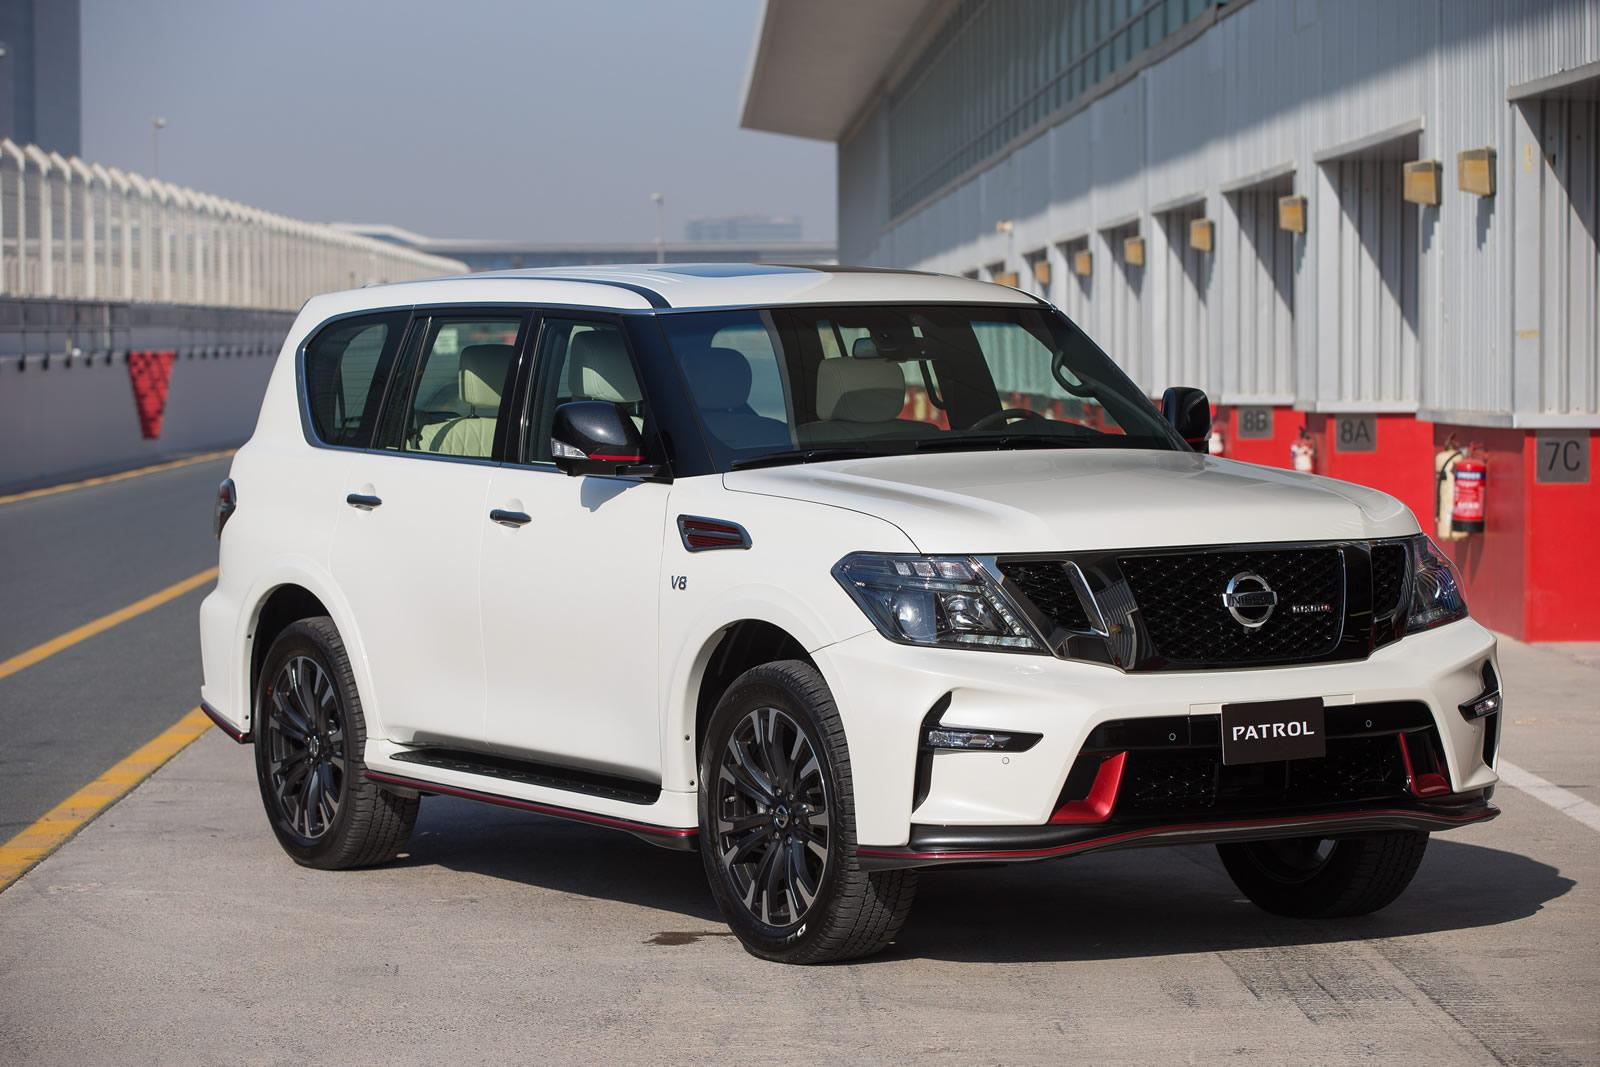 Nismo Reveals 428 Hp Nissan Patrol For The Middle East Gtspirit